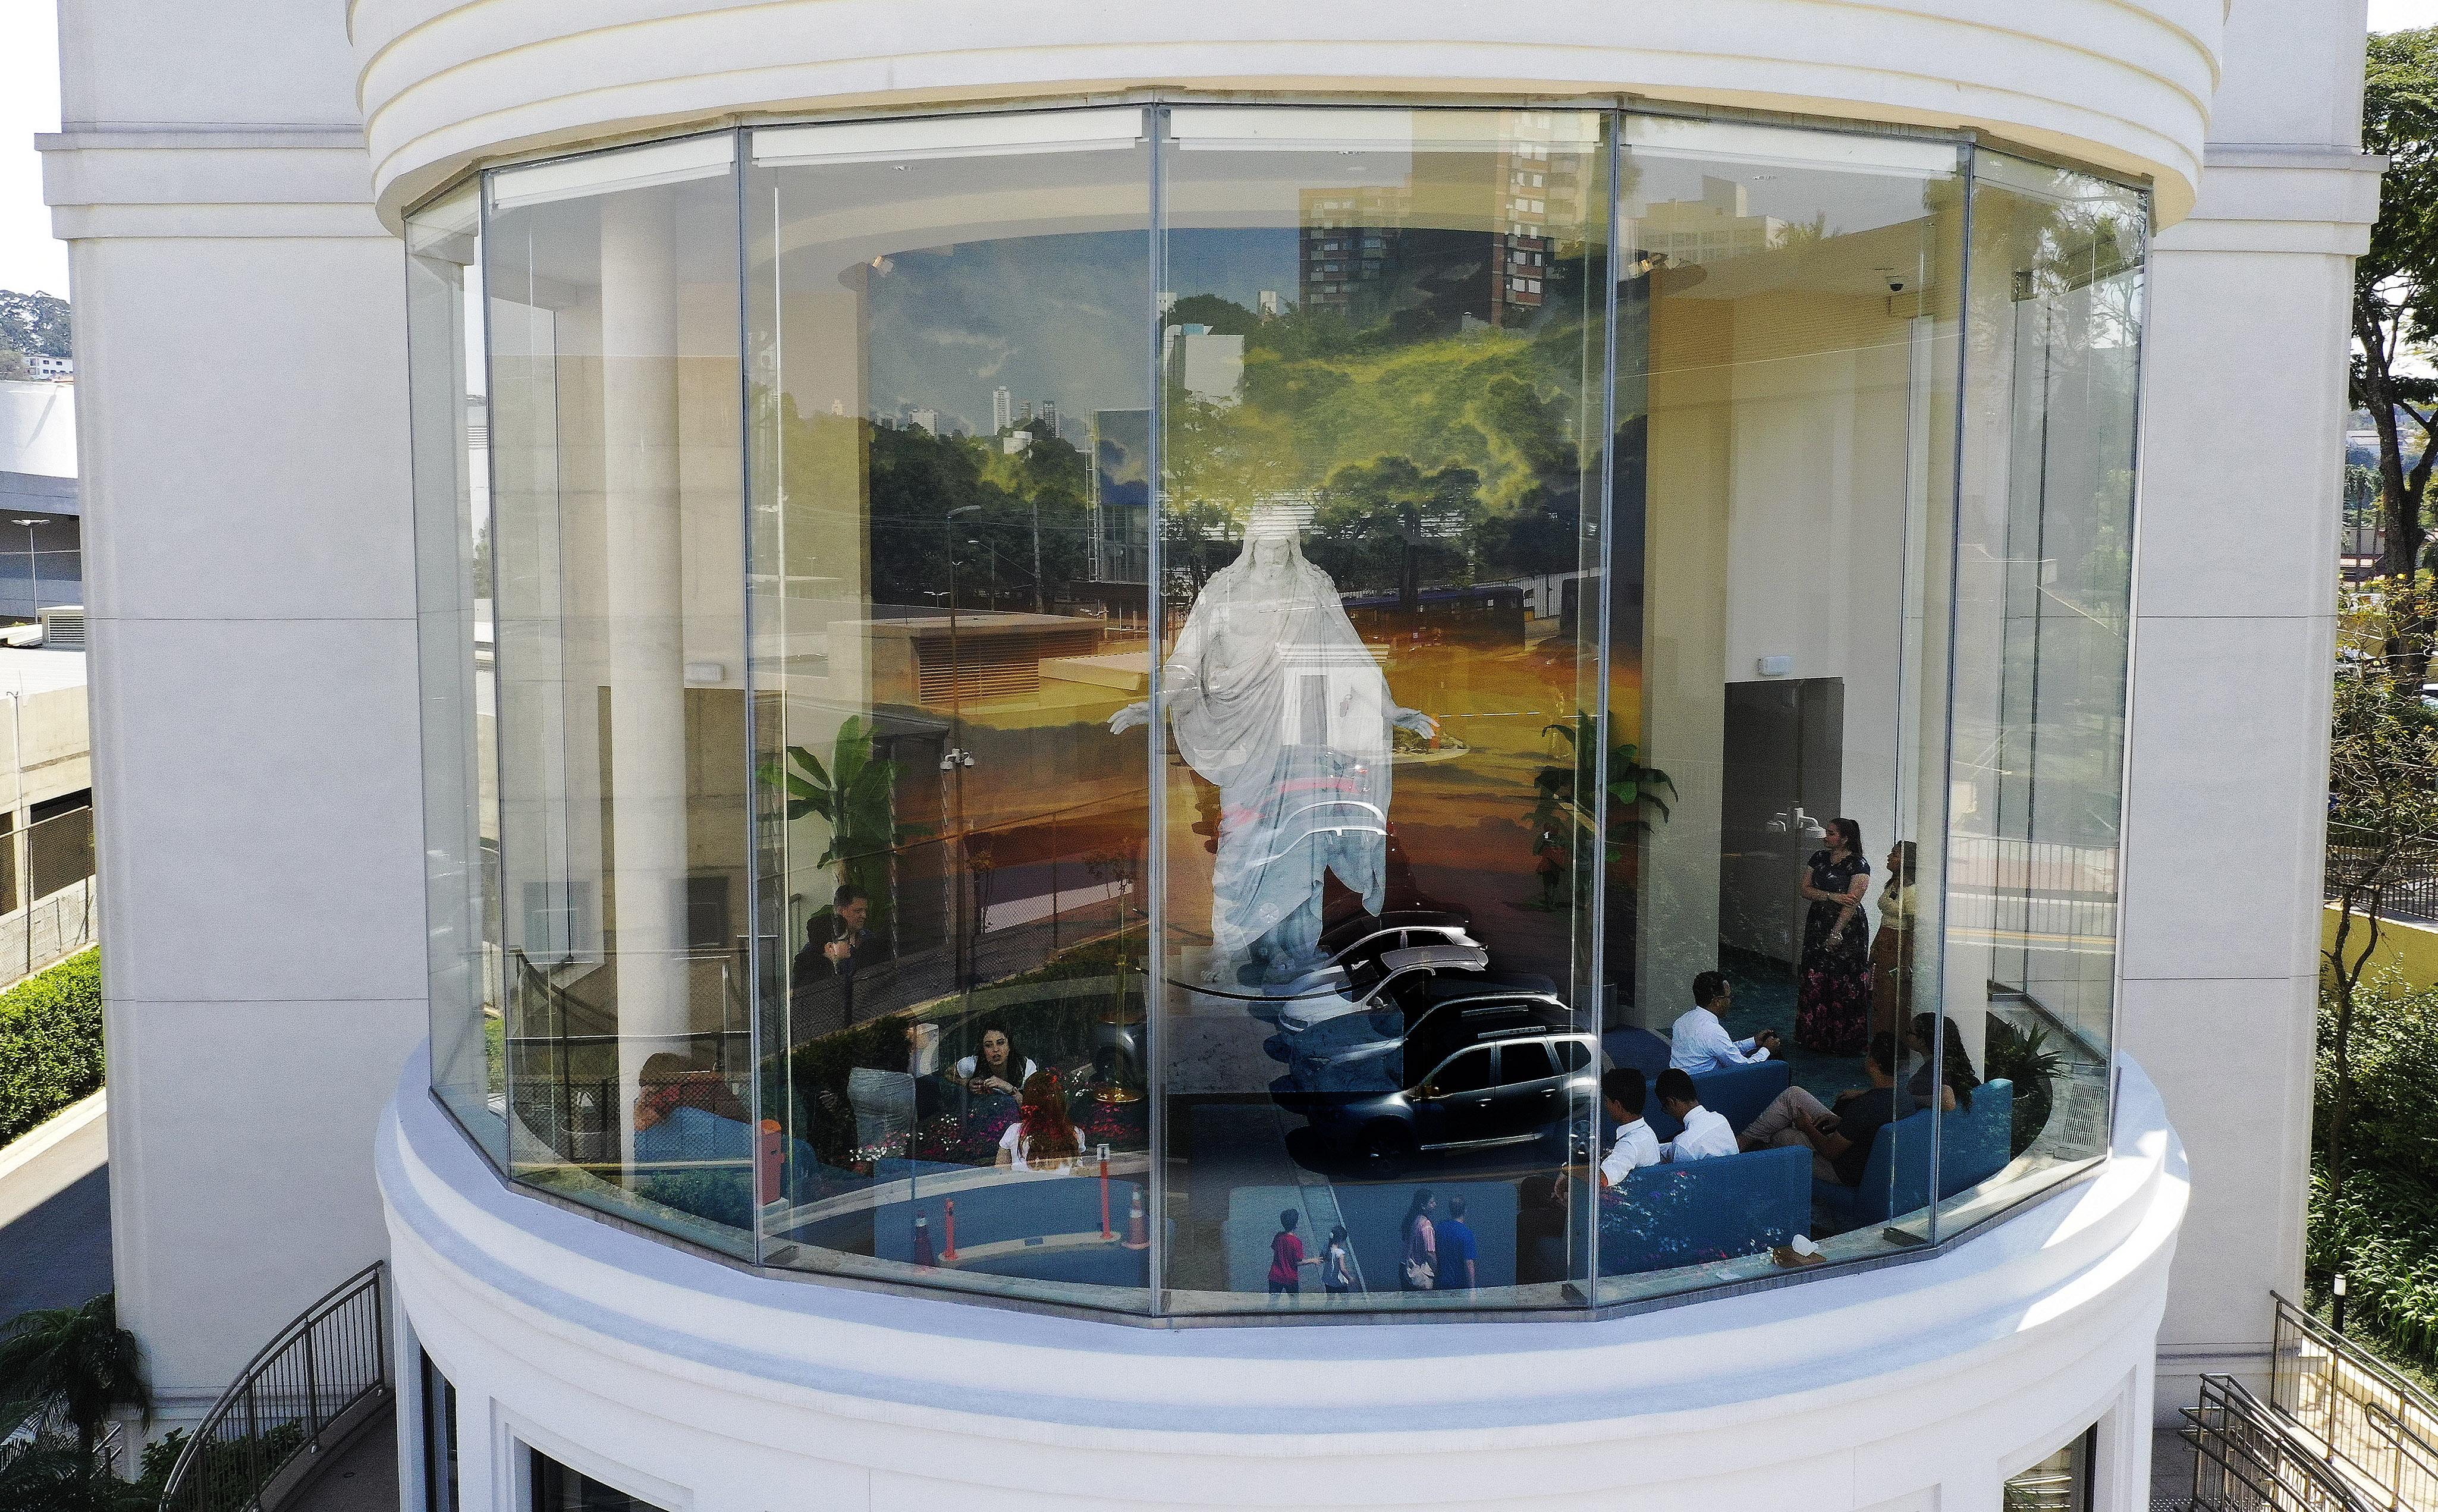 Visitors look through the Sao Paulo Brazil Temple Visitors' Center in Sao Paulo, Brazil, on Aug. 31, 2019.